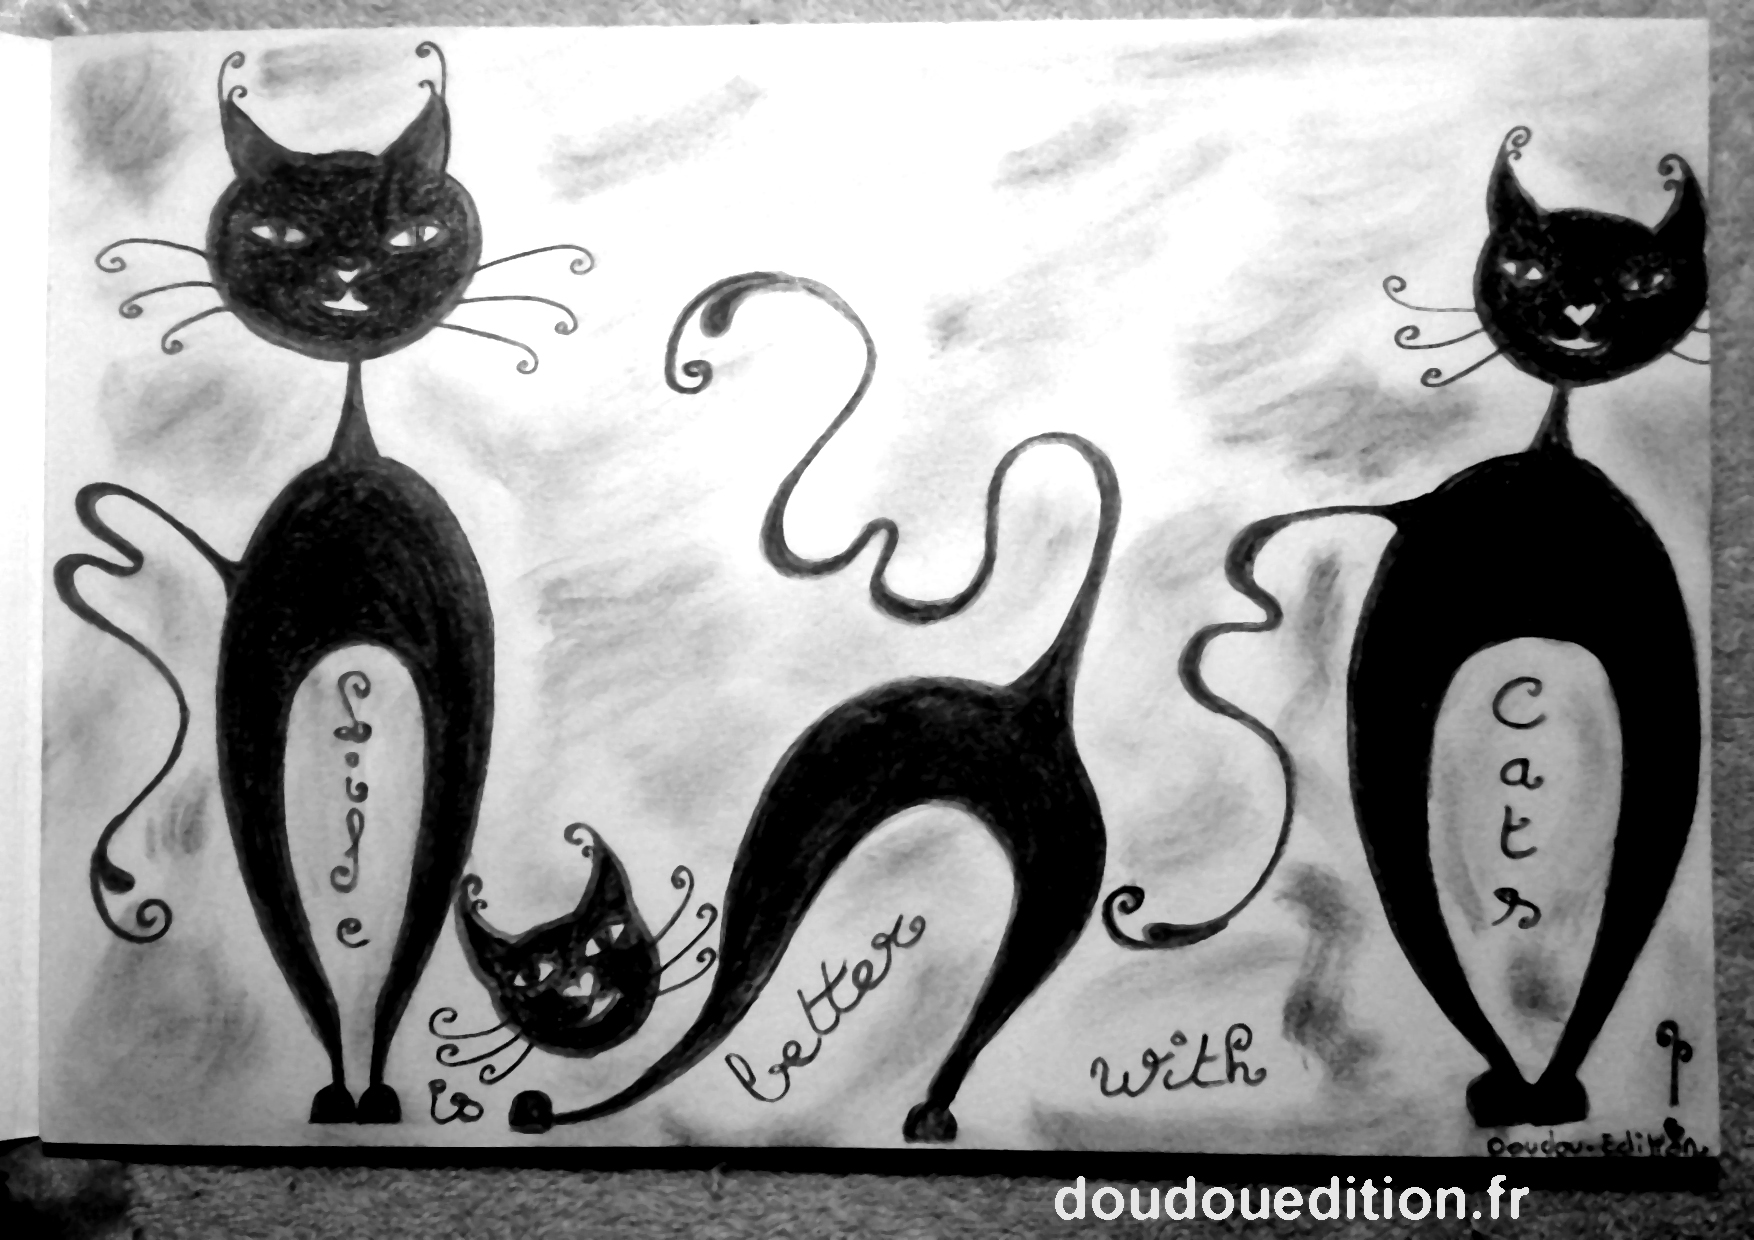 illustration done in charcoal : life is better with cats!